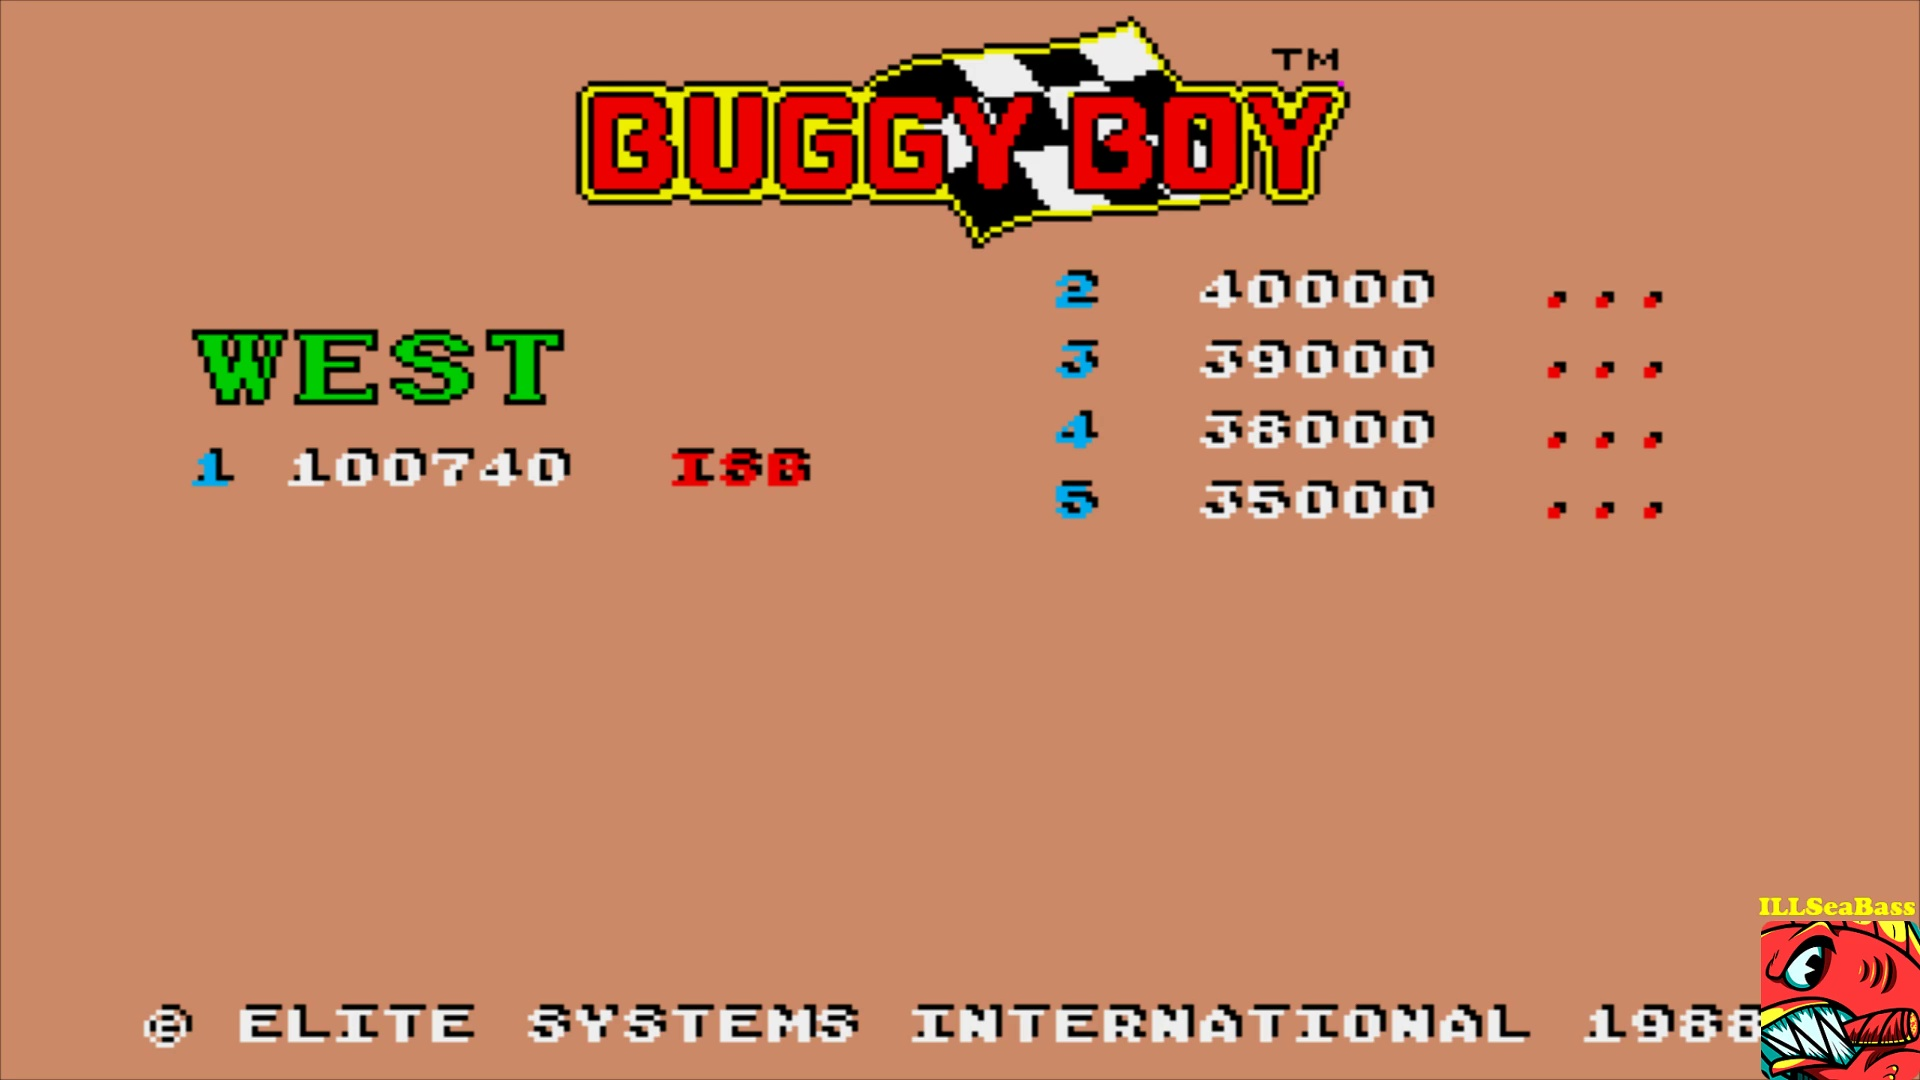 ILLSeaBass: Buggy Boy [West] (Amiga Emulated) 100,740 points on 2017-10-28 10:33:30